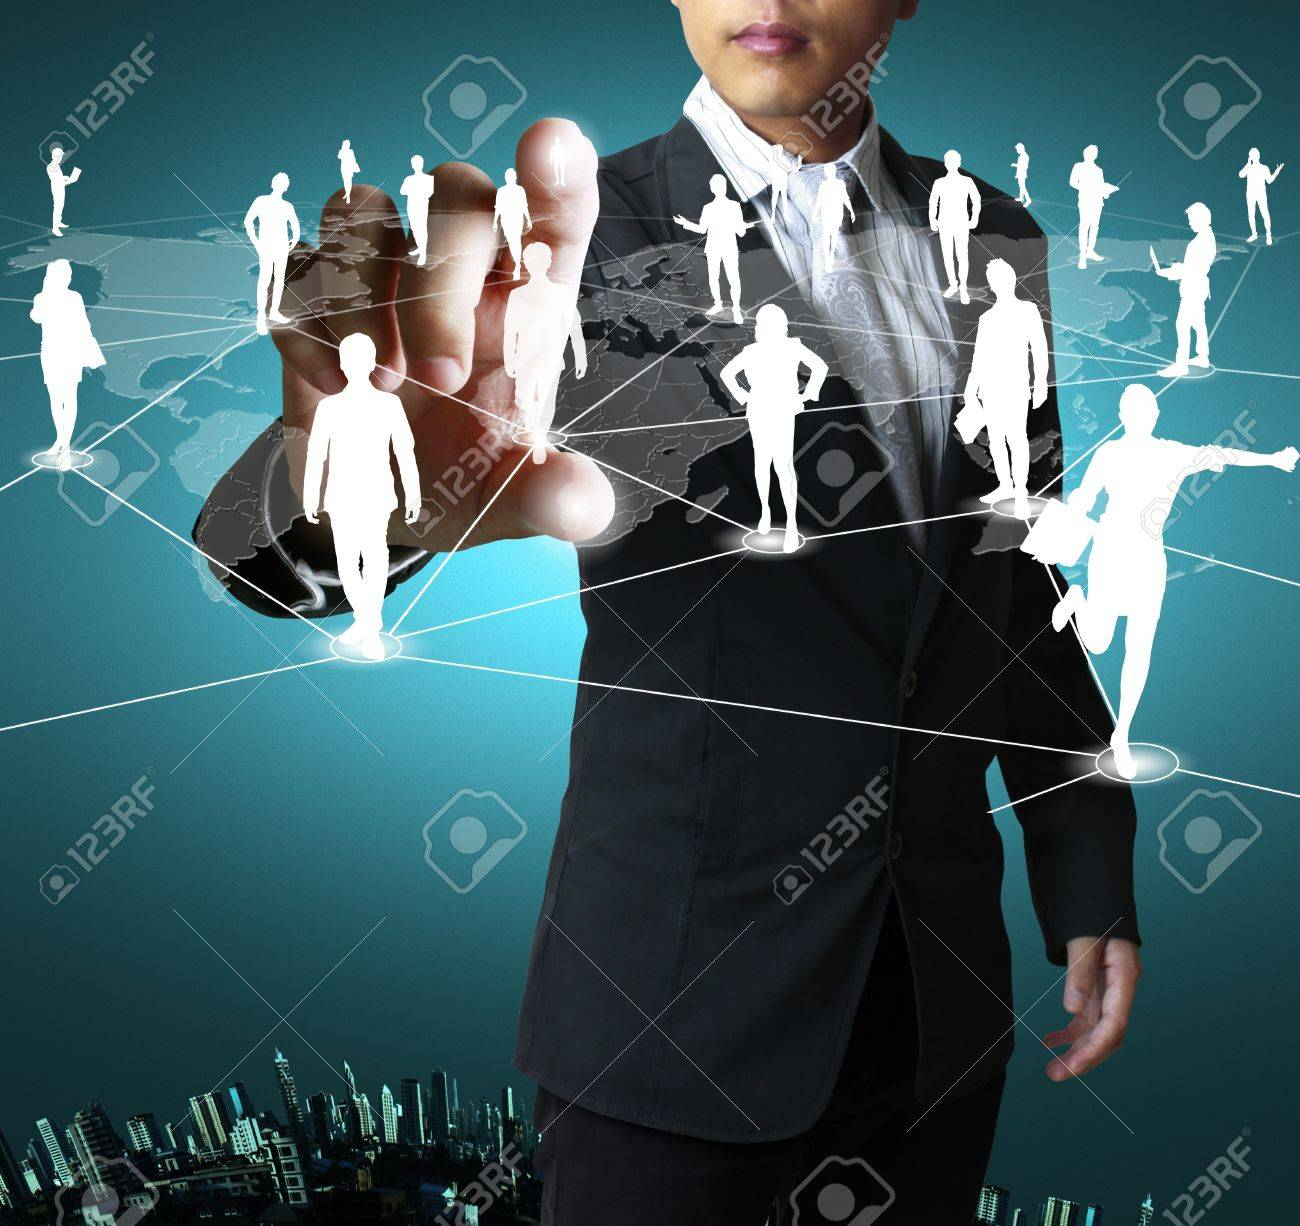 social network structure Stock Photo - 11236595